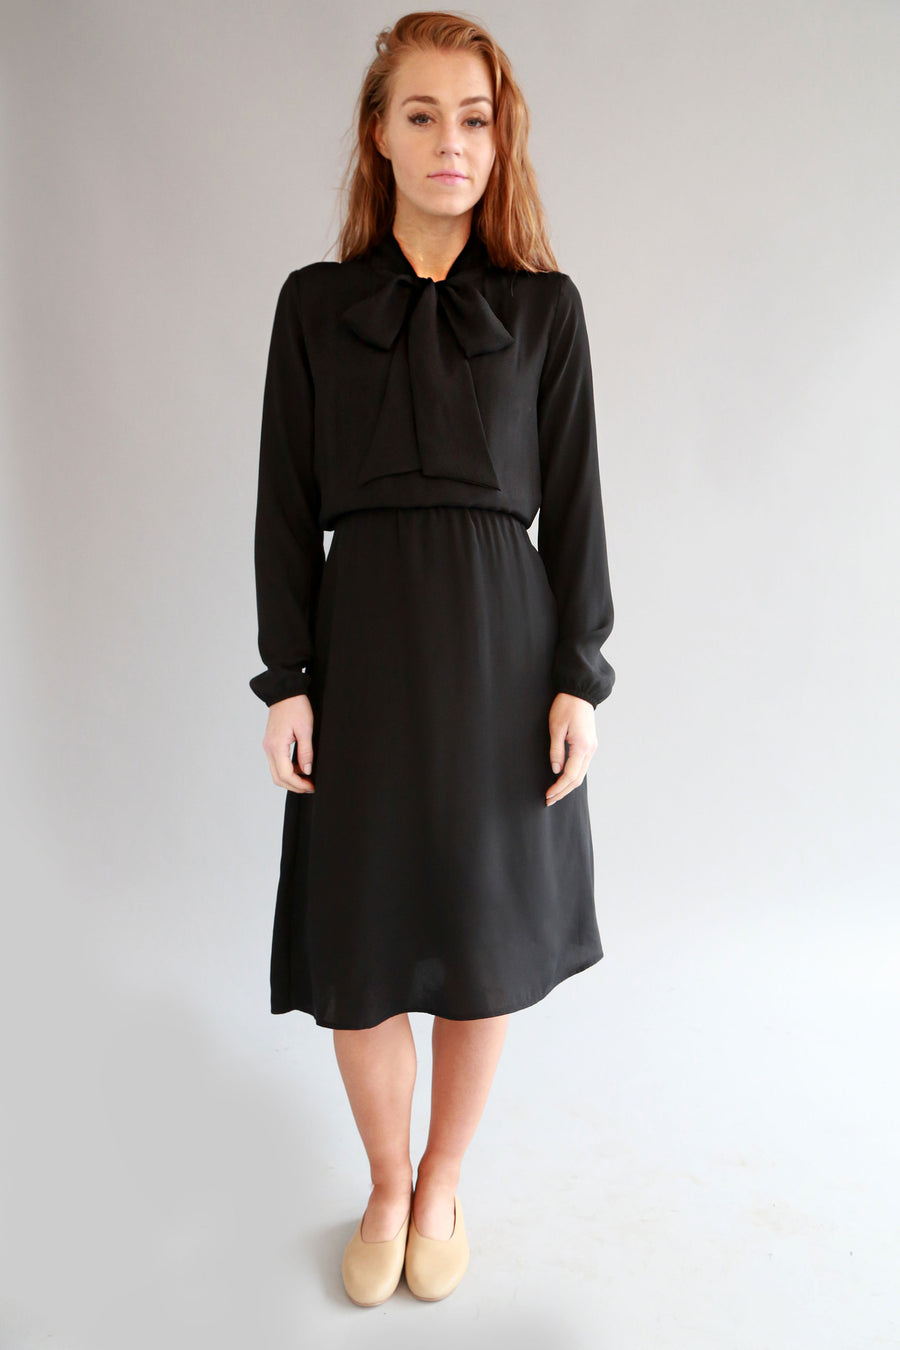 BLACK SOL DRESS - SOLIKA